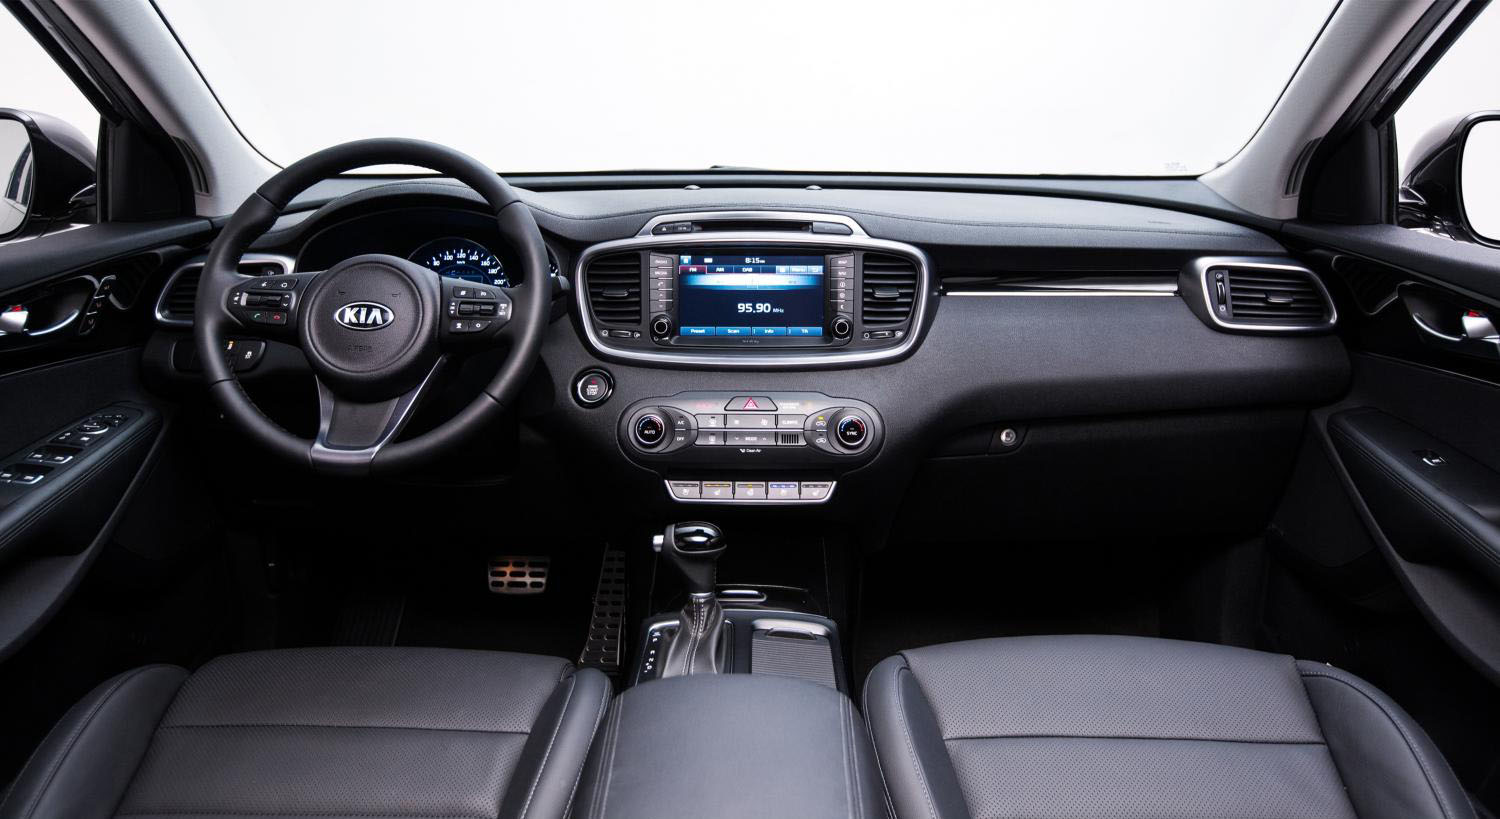 astounding-dsign-of-the-black-and-grey-dash-ideas-with-seats-ideas-as-the-kia-sorento-2015-interior